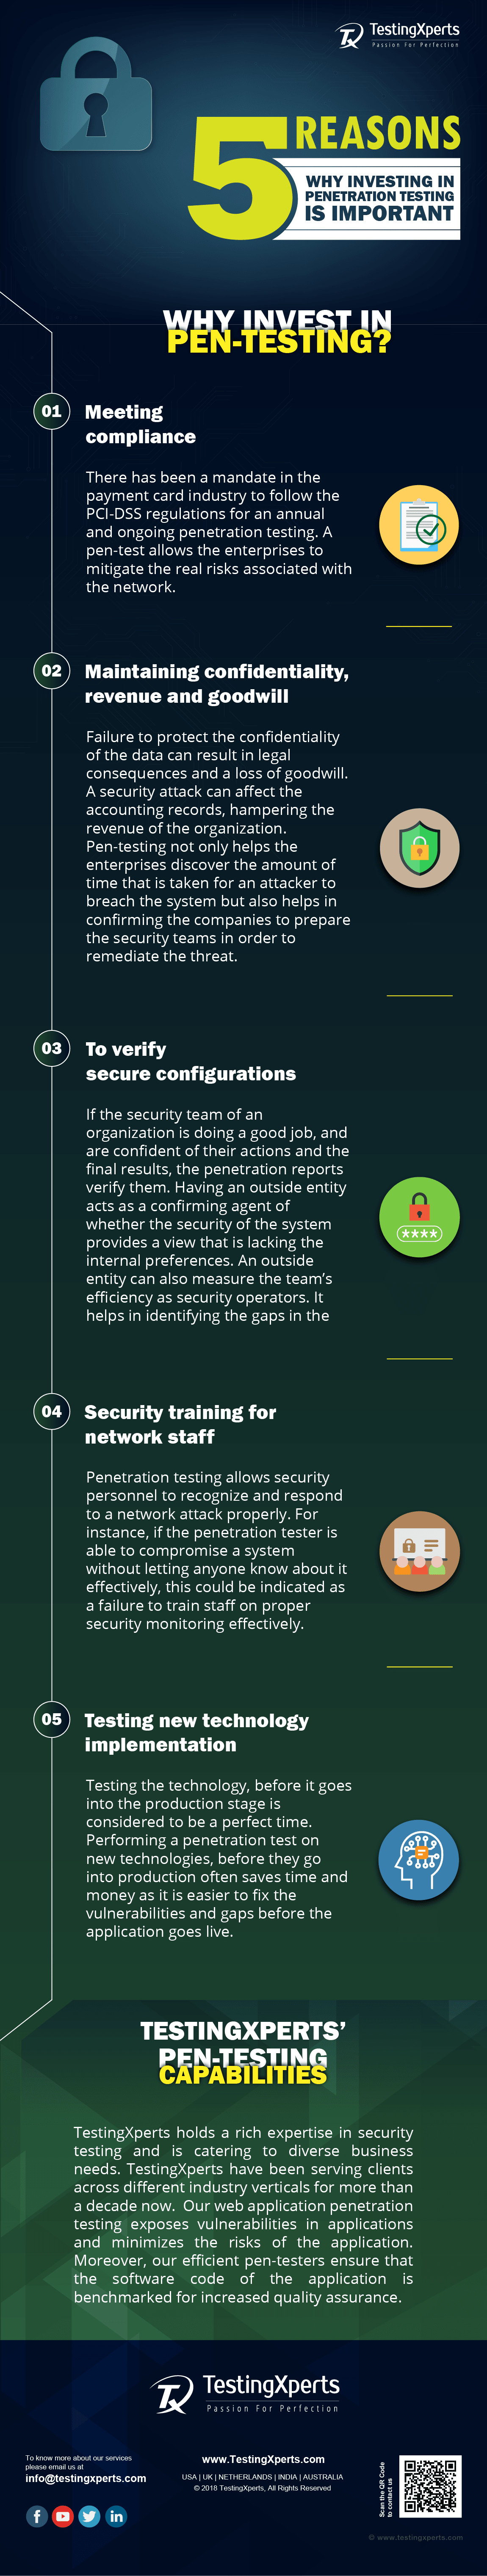 Invest-in-Penetration-Testing-Infographic